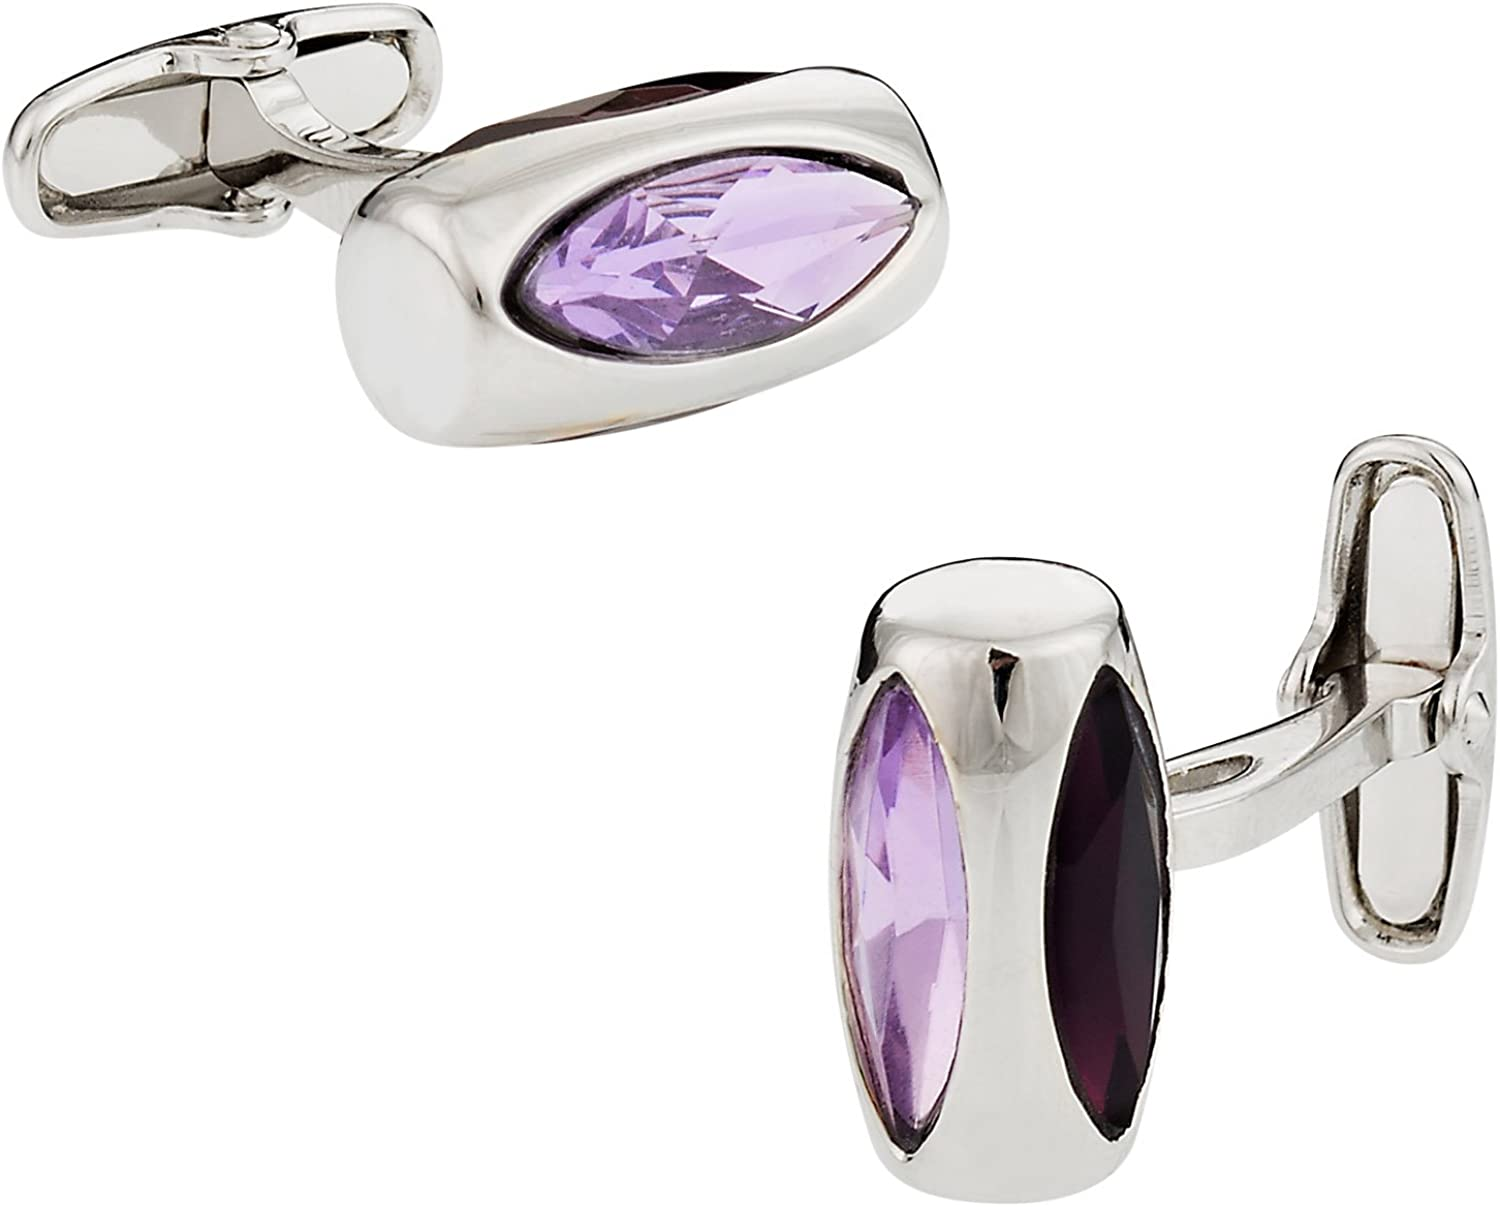 Soho Cuff-Daddy Manufacturer regenerated product Purple Crystal Glass Sales for sale Vault with Cufflinks Presen